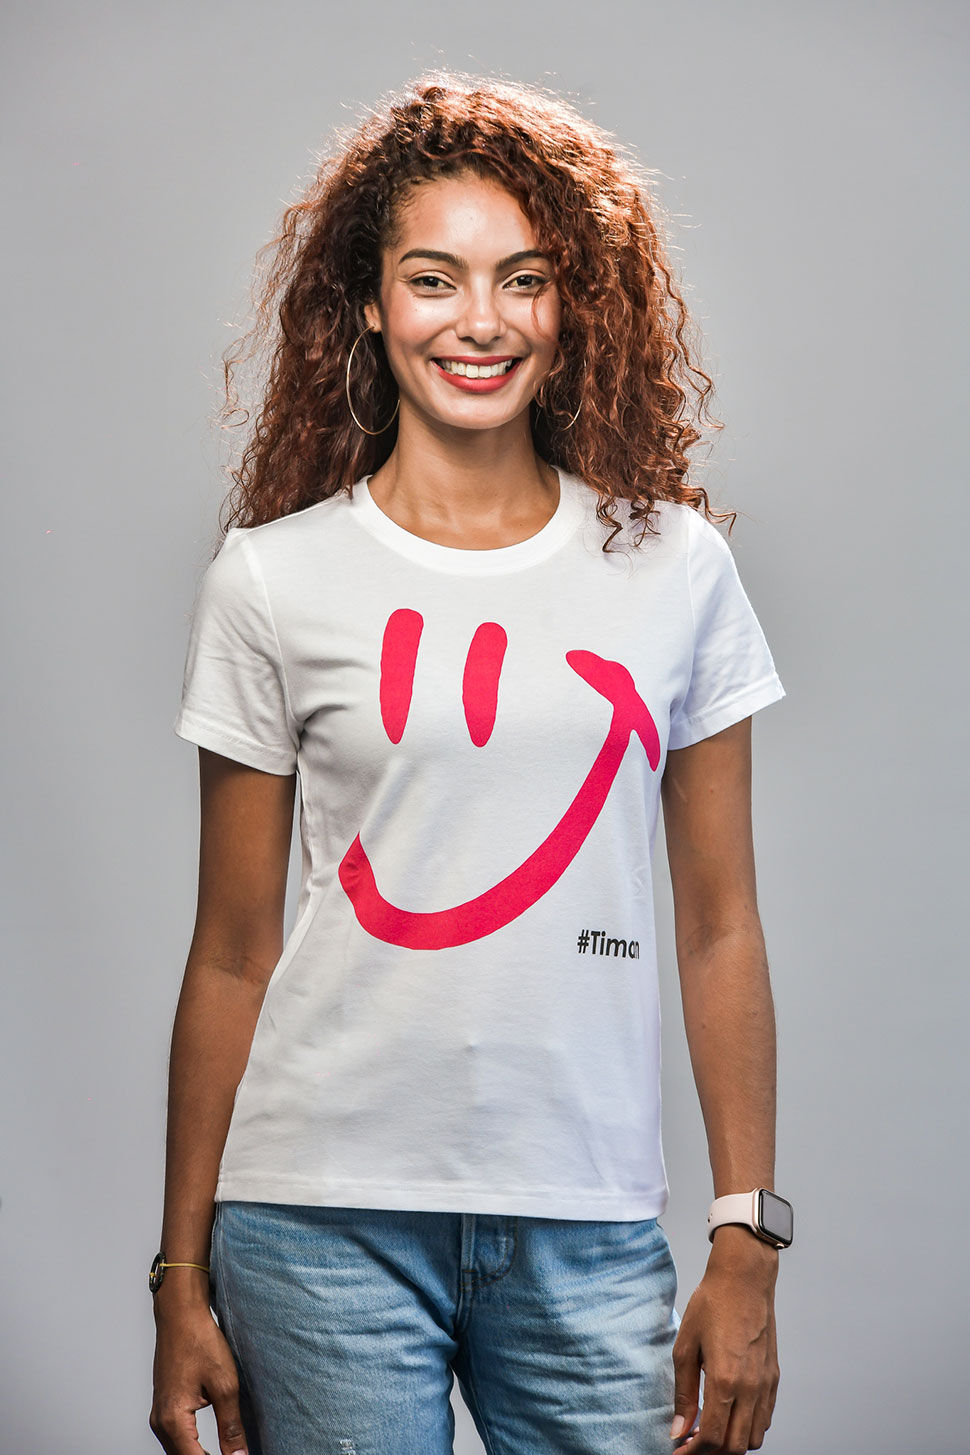 Women's Pink Luna White T-Shirt Model 2